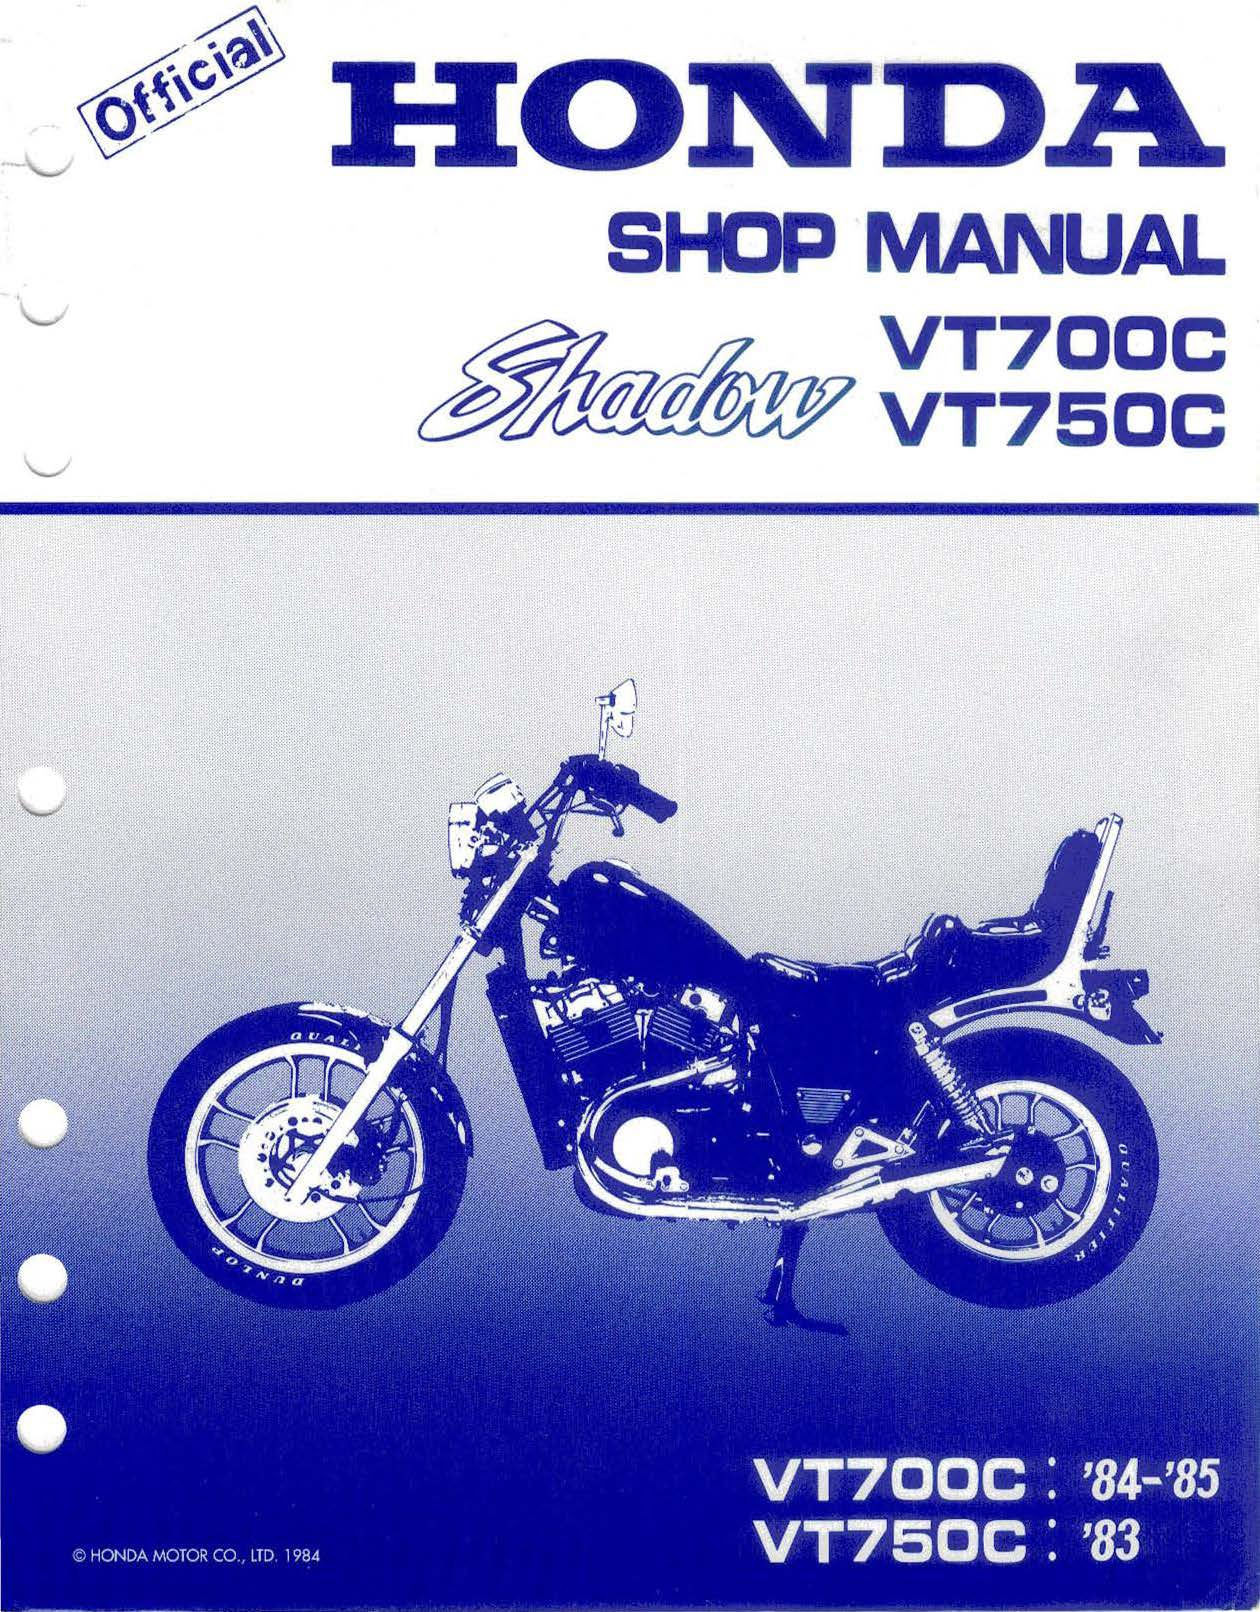 Workshop manual for Honda VT700C Shadow (1984-1985)